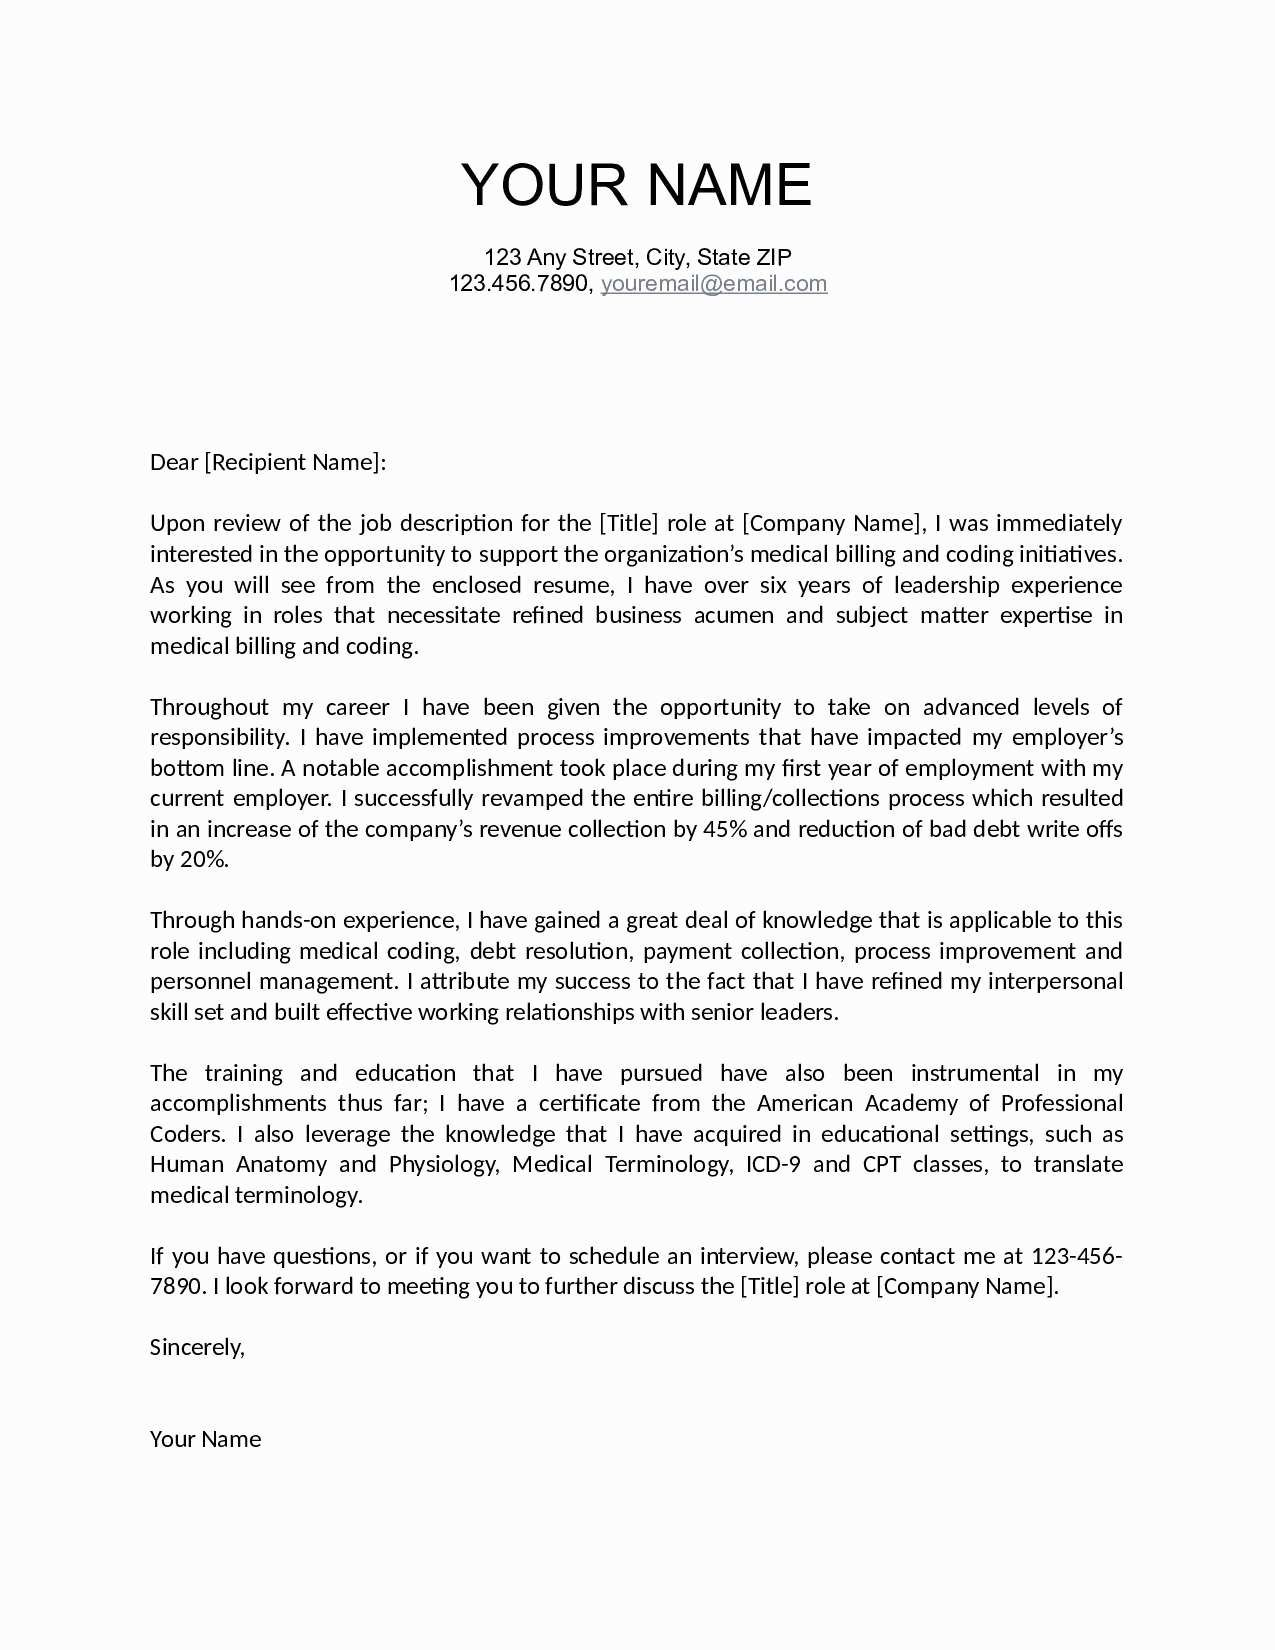 Recruitment Letter Template - How to Write A Cover Letter for Recruitment Agency Best Job Fer